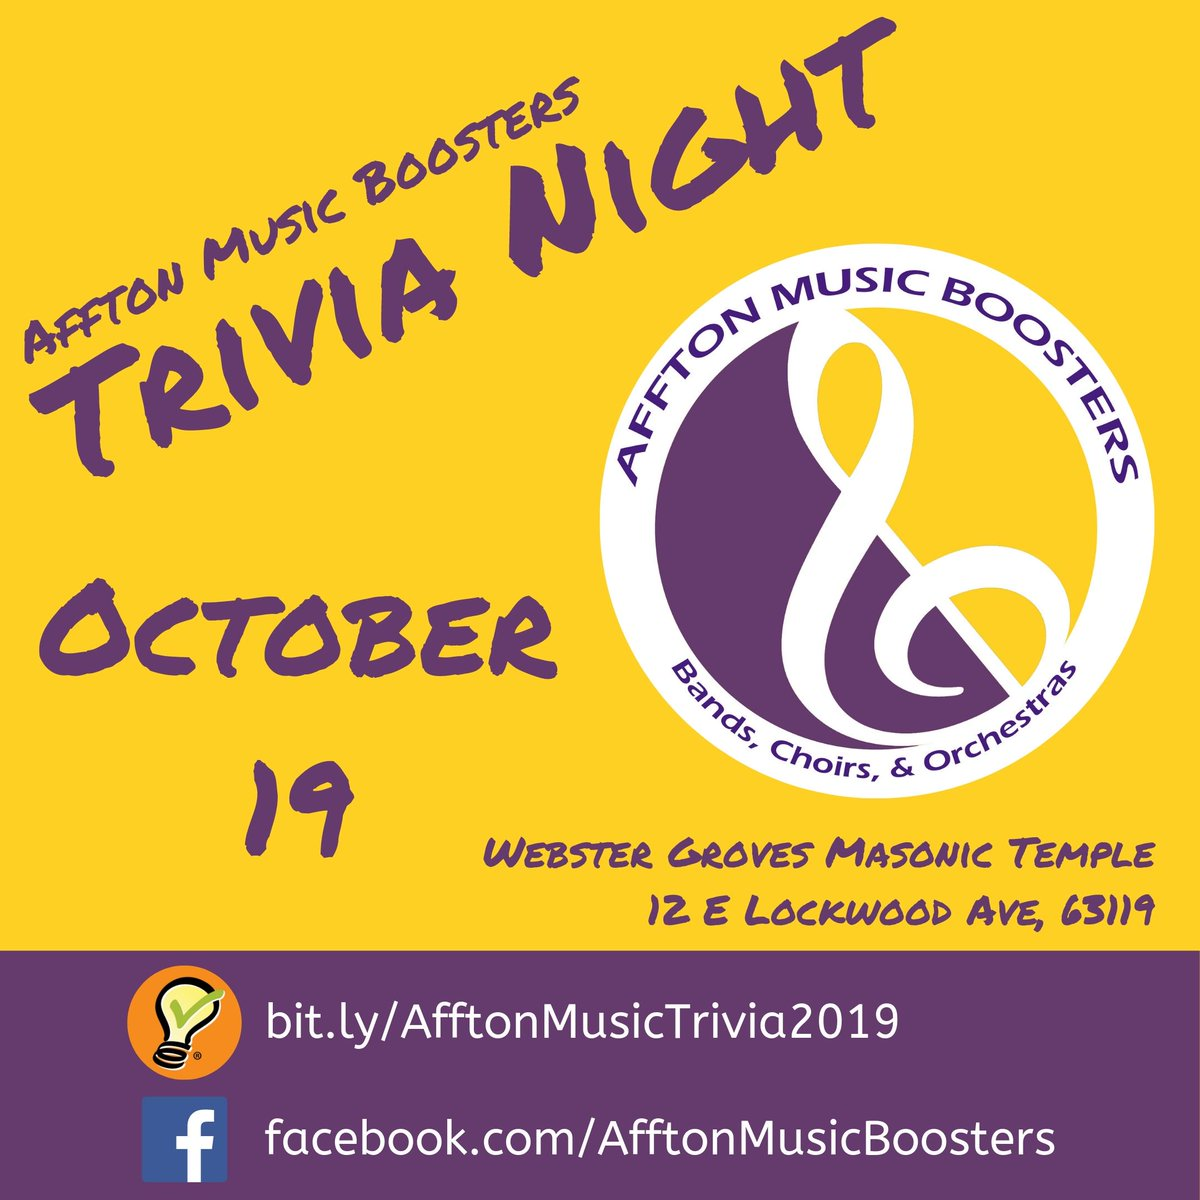 Mark your calendars for Affton Music Boosters Trivia Night on Saturday, October 19!